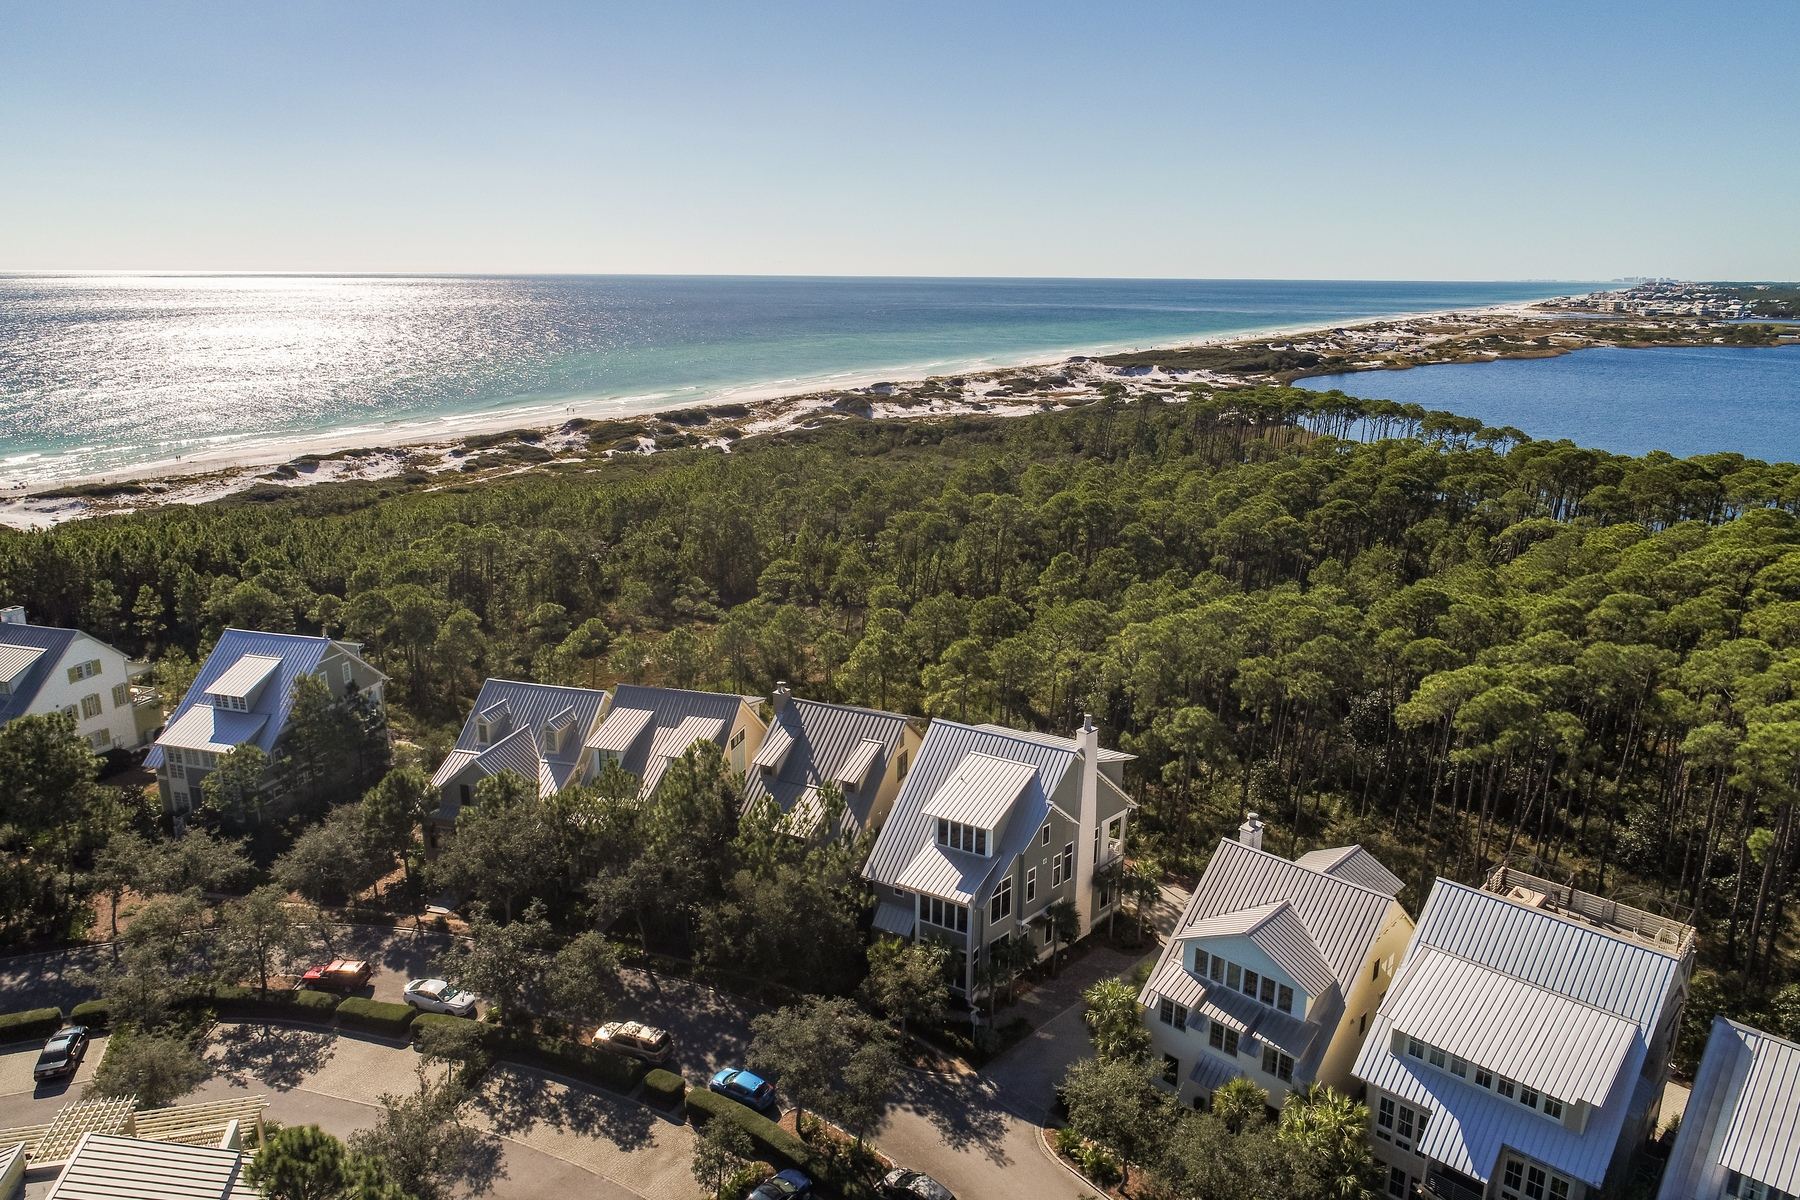 Casa Unifamiliar por un Venta en Luxurious Rustic Modern Home for Discriminating Lifestyle with Water Views 31 Park Row Lane, Watercolor, Santa Rosa Beach, Florida, 32459 Estados Unidos